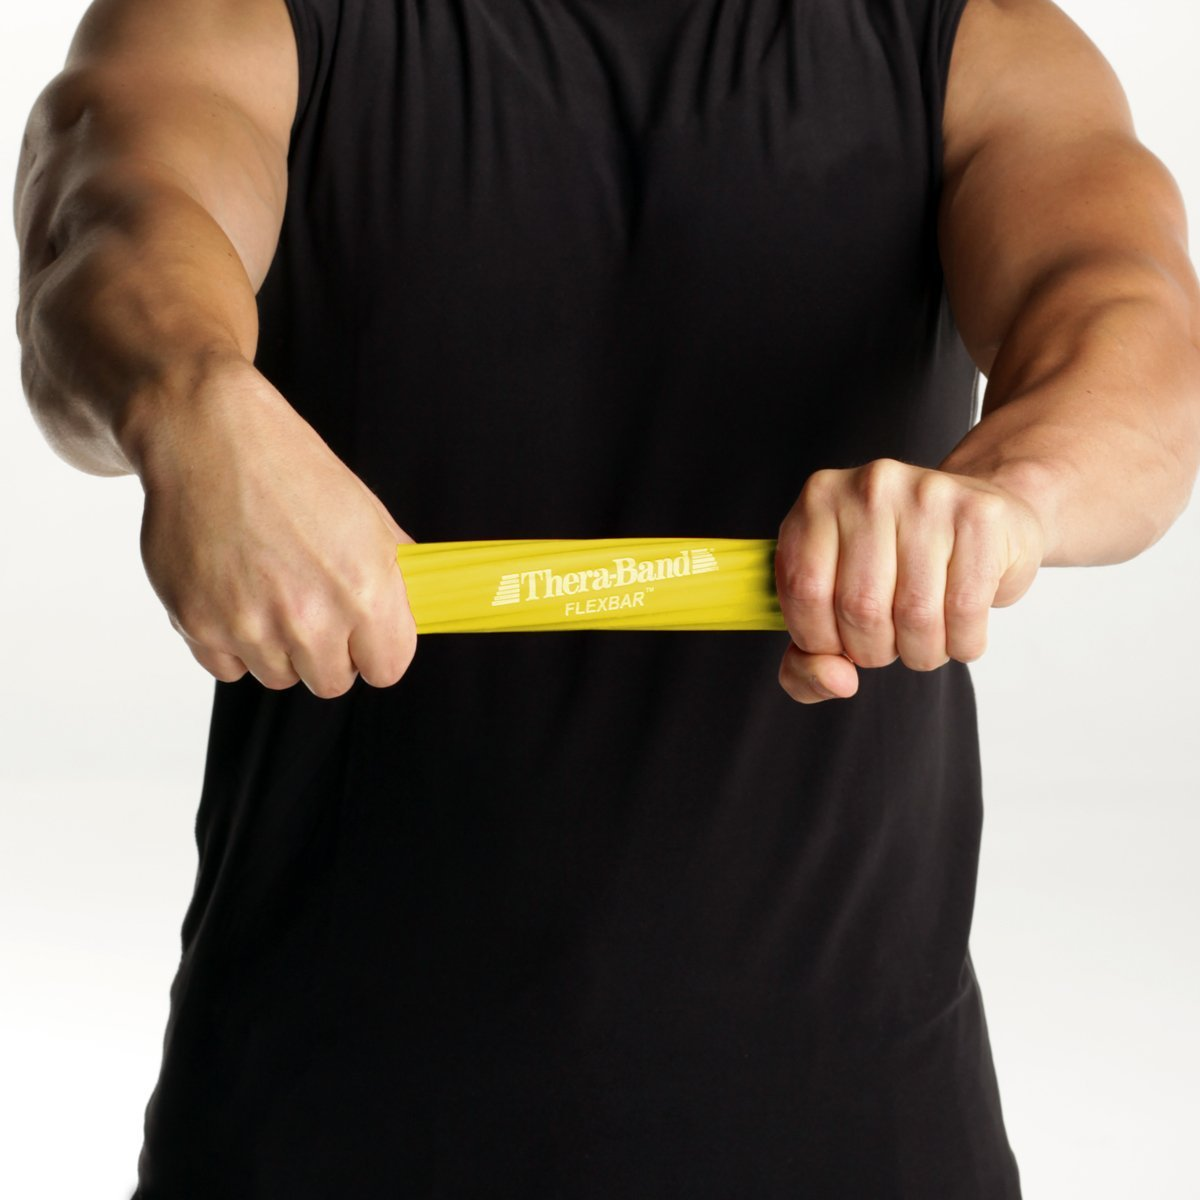 TheraBand FlexBar, Tennis Elbow Therapy Bar, Relieve Tendonitis Pain & Improve Grip Strength, Resistance Bar for Golfers Elbow & Tendinitis, Yellow, Extra Light, Beginner - 26107 by TheraBand (Image #5)